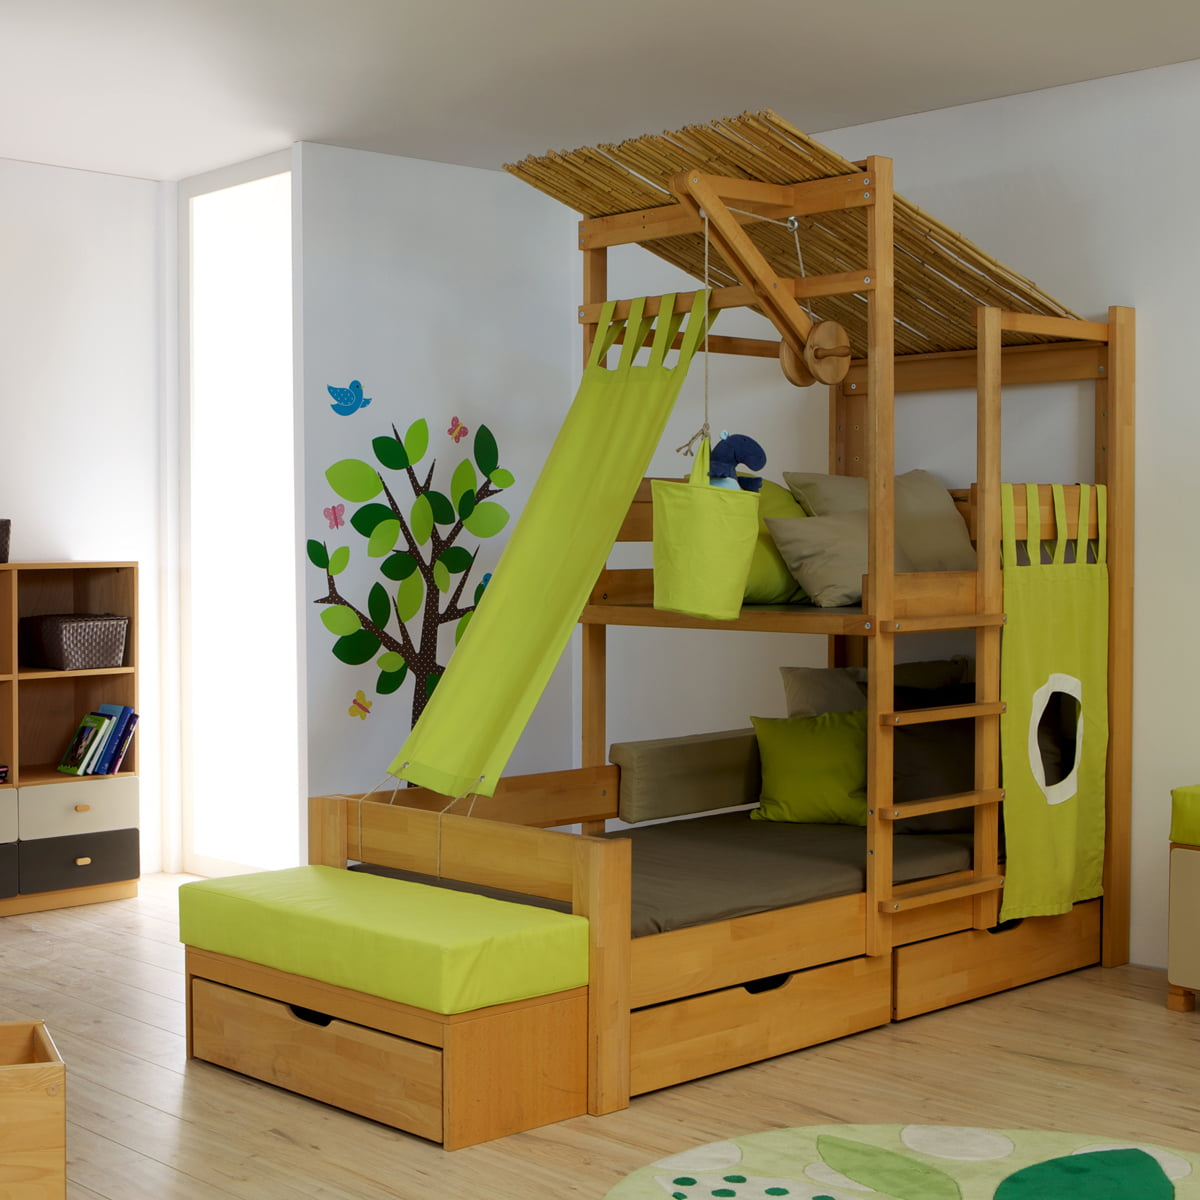 Small Children Want To Get Way Up High. Treehouse Bed ...